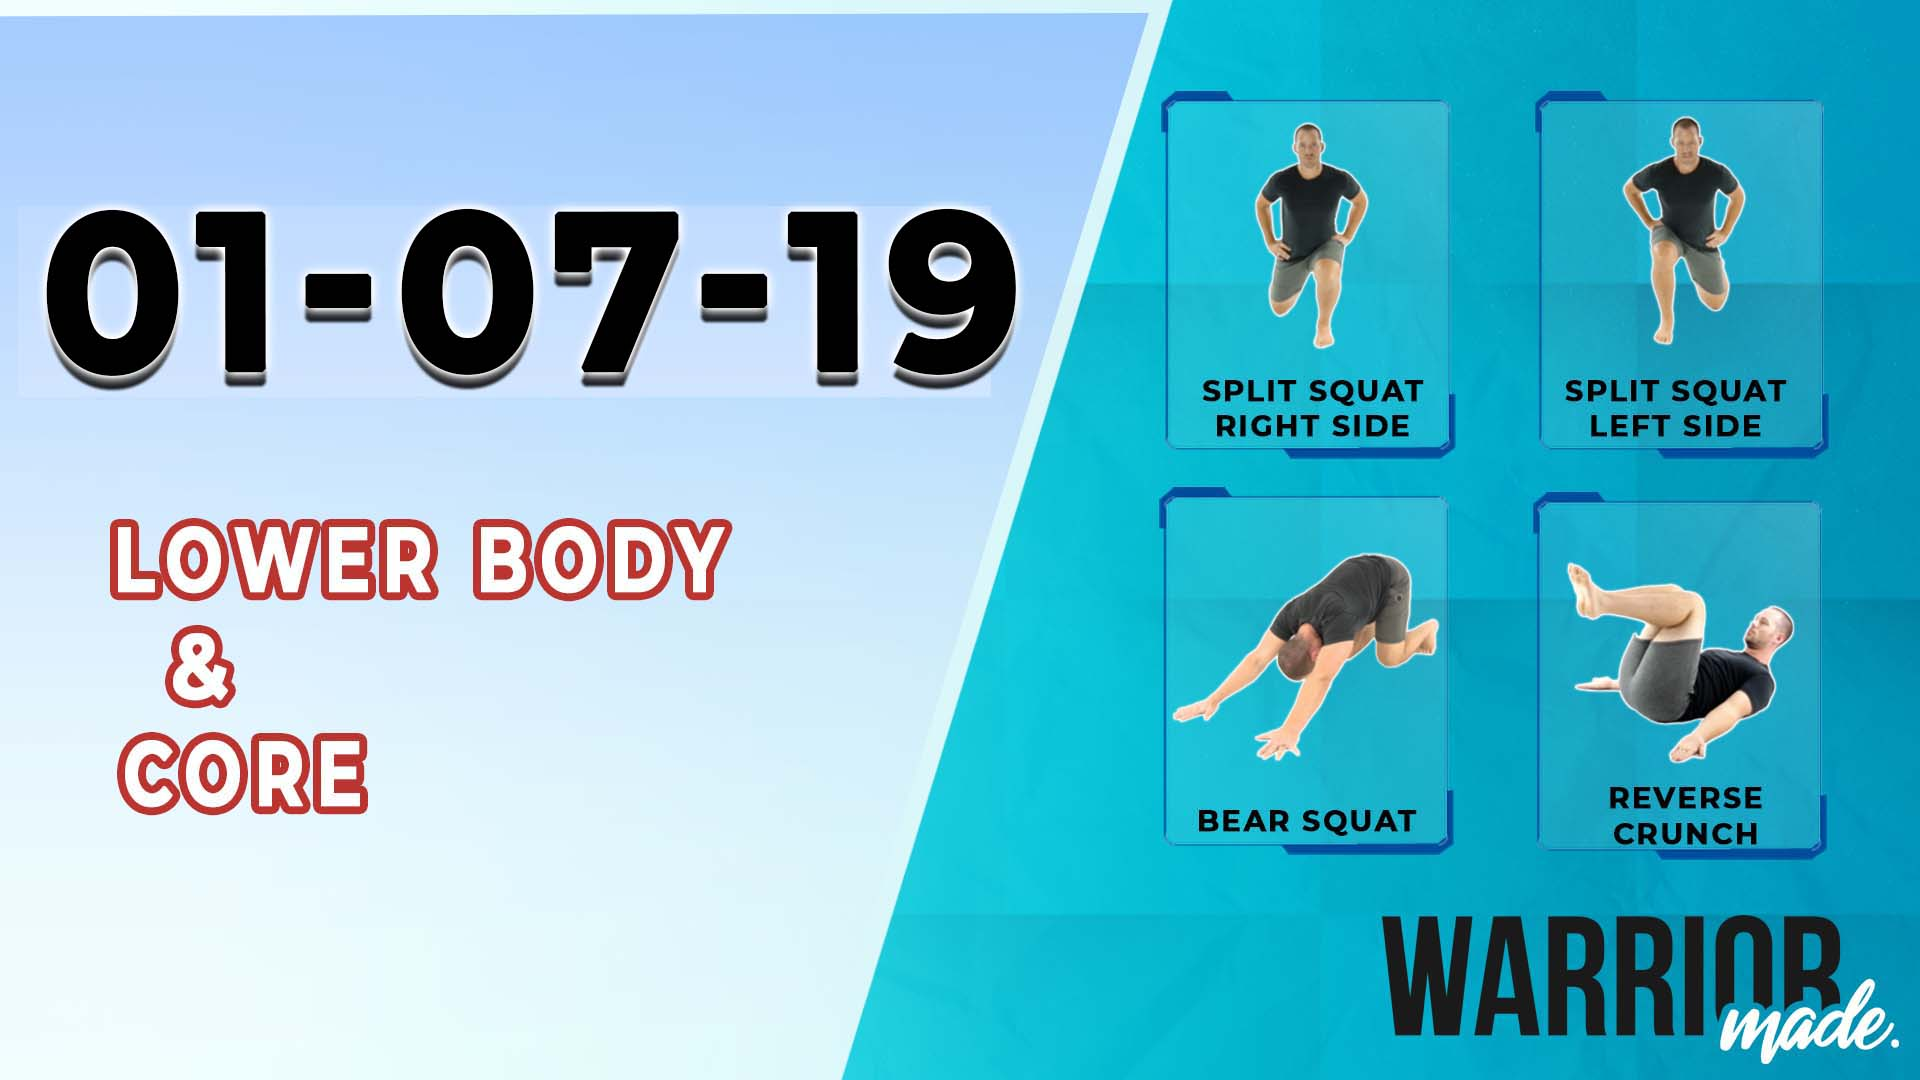 workouts-01-07-19